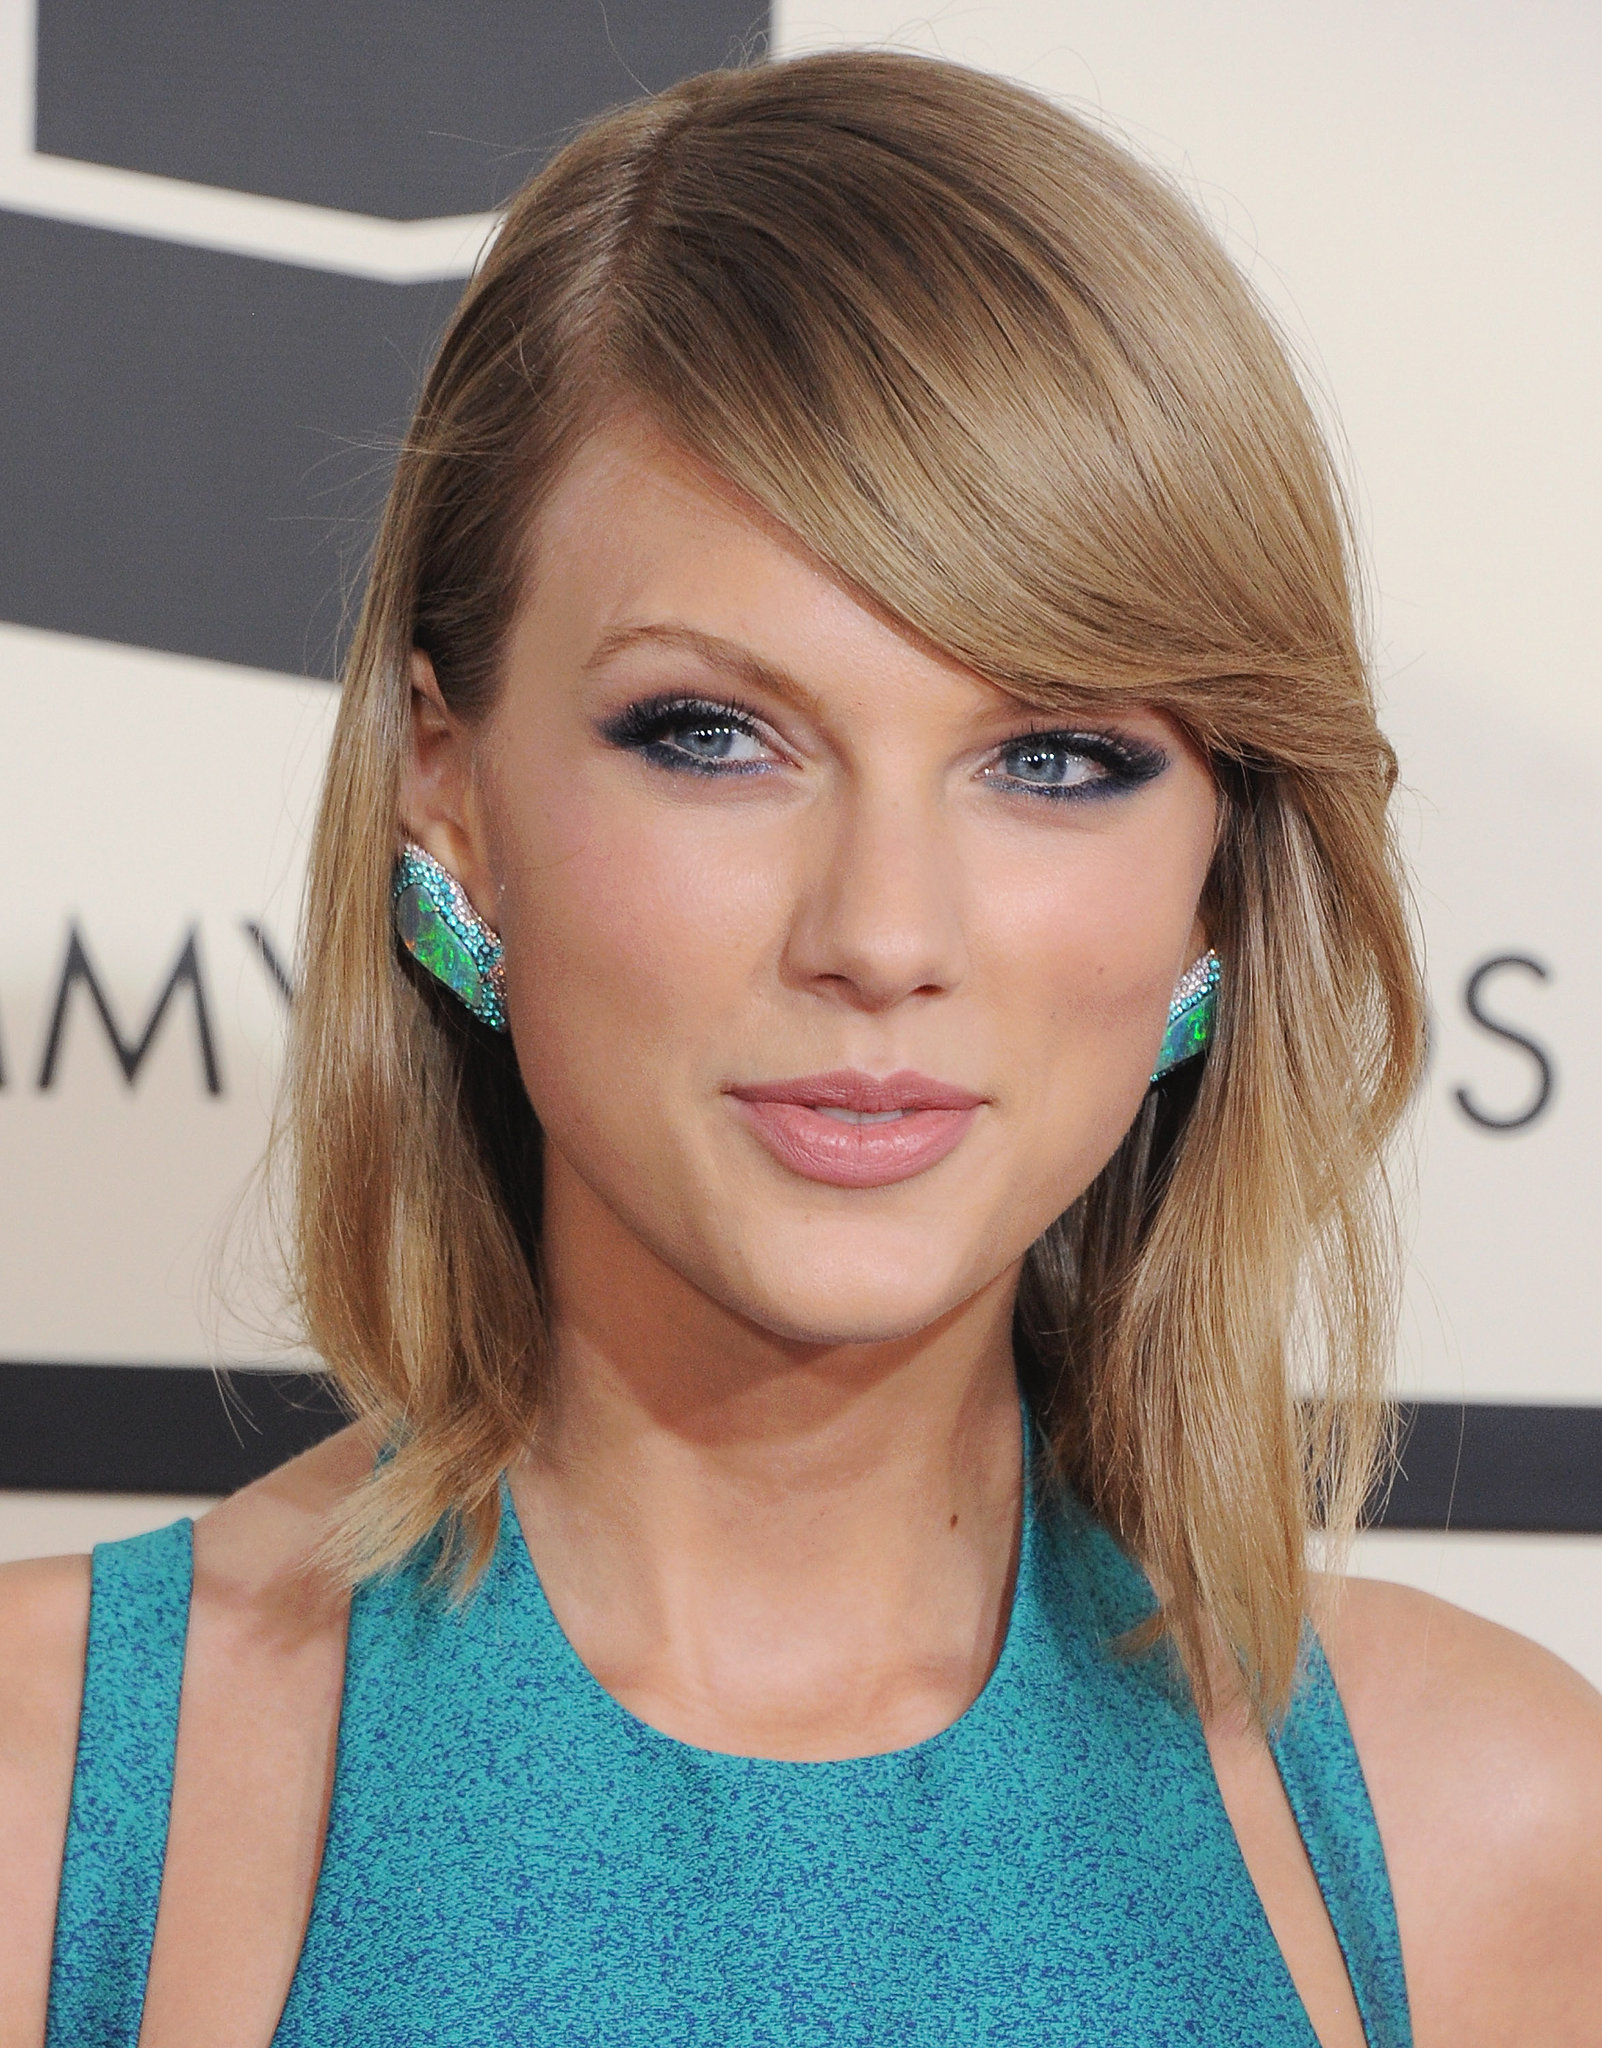 Taylor Swift Joias